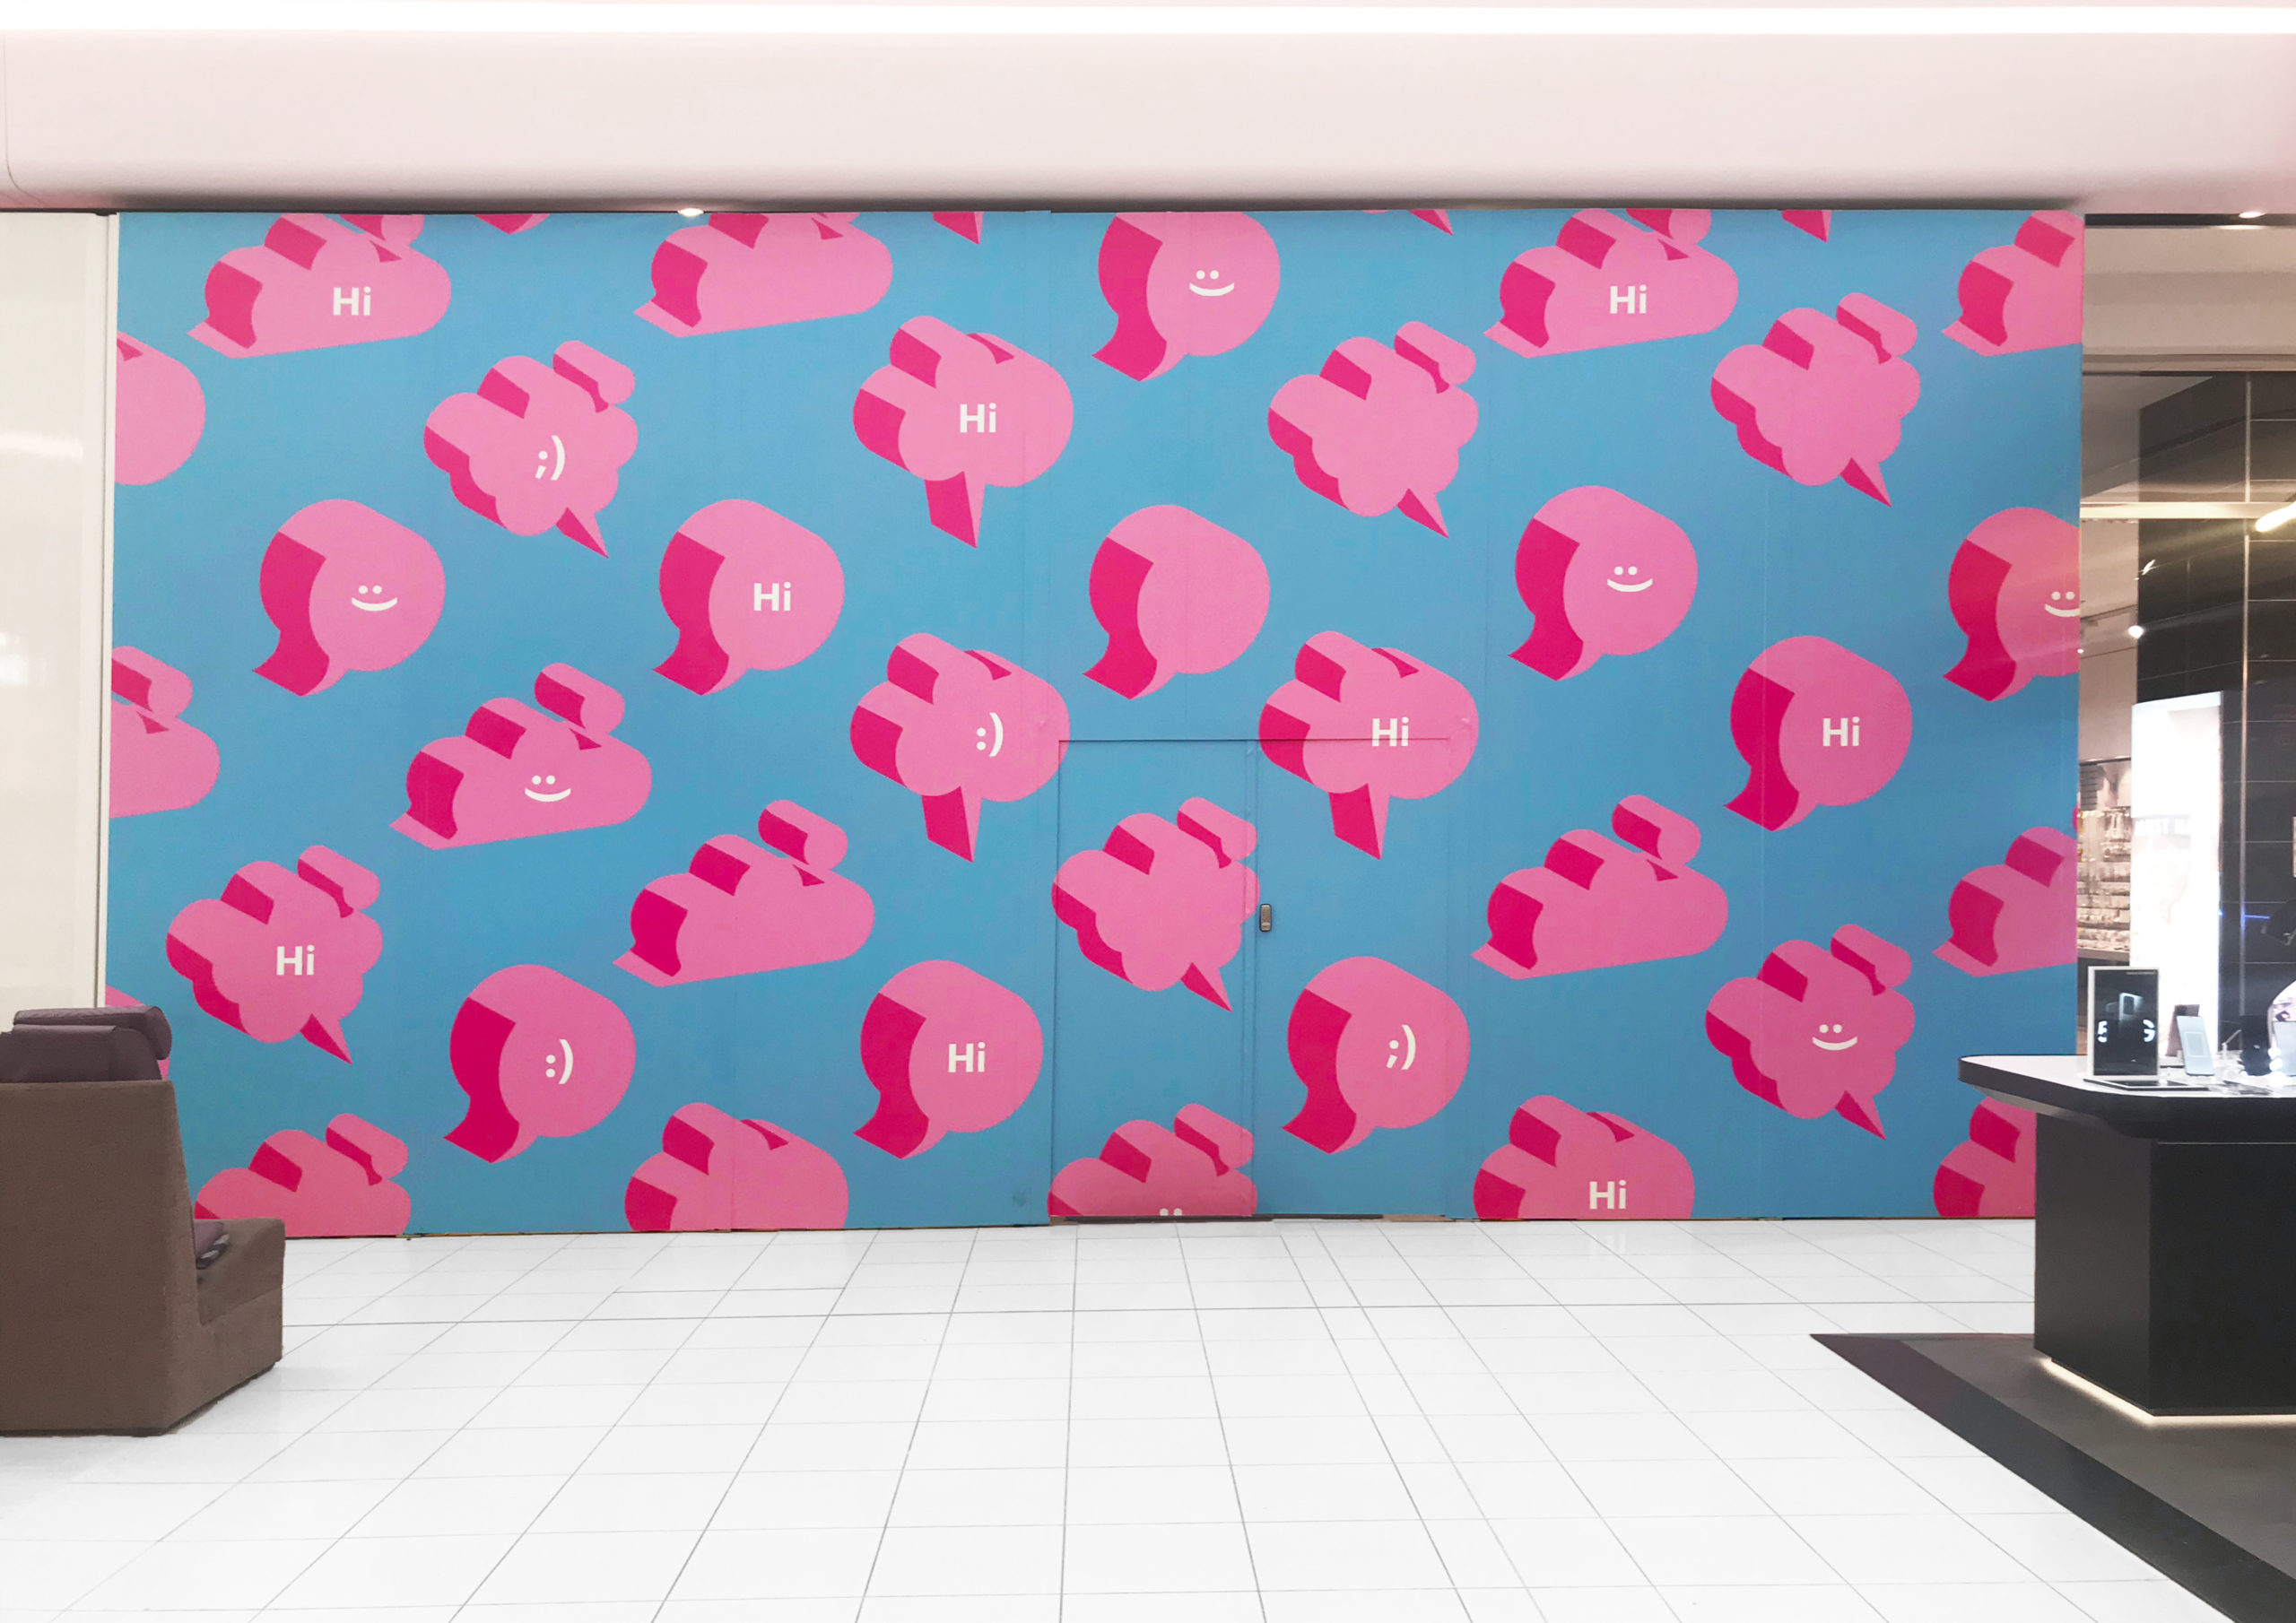 Cute speech bubbles with emoticons on retail wall